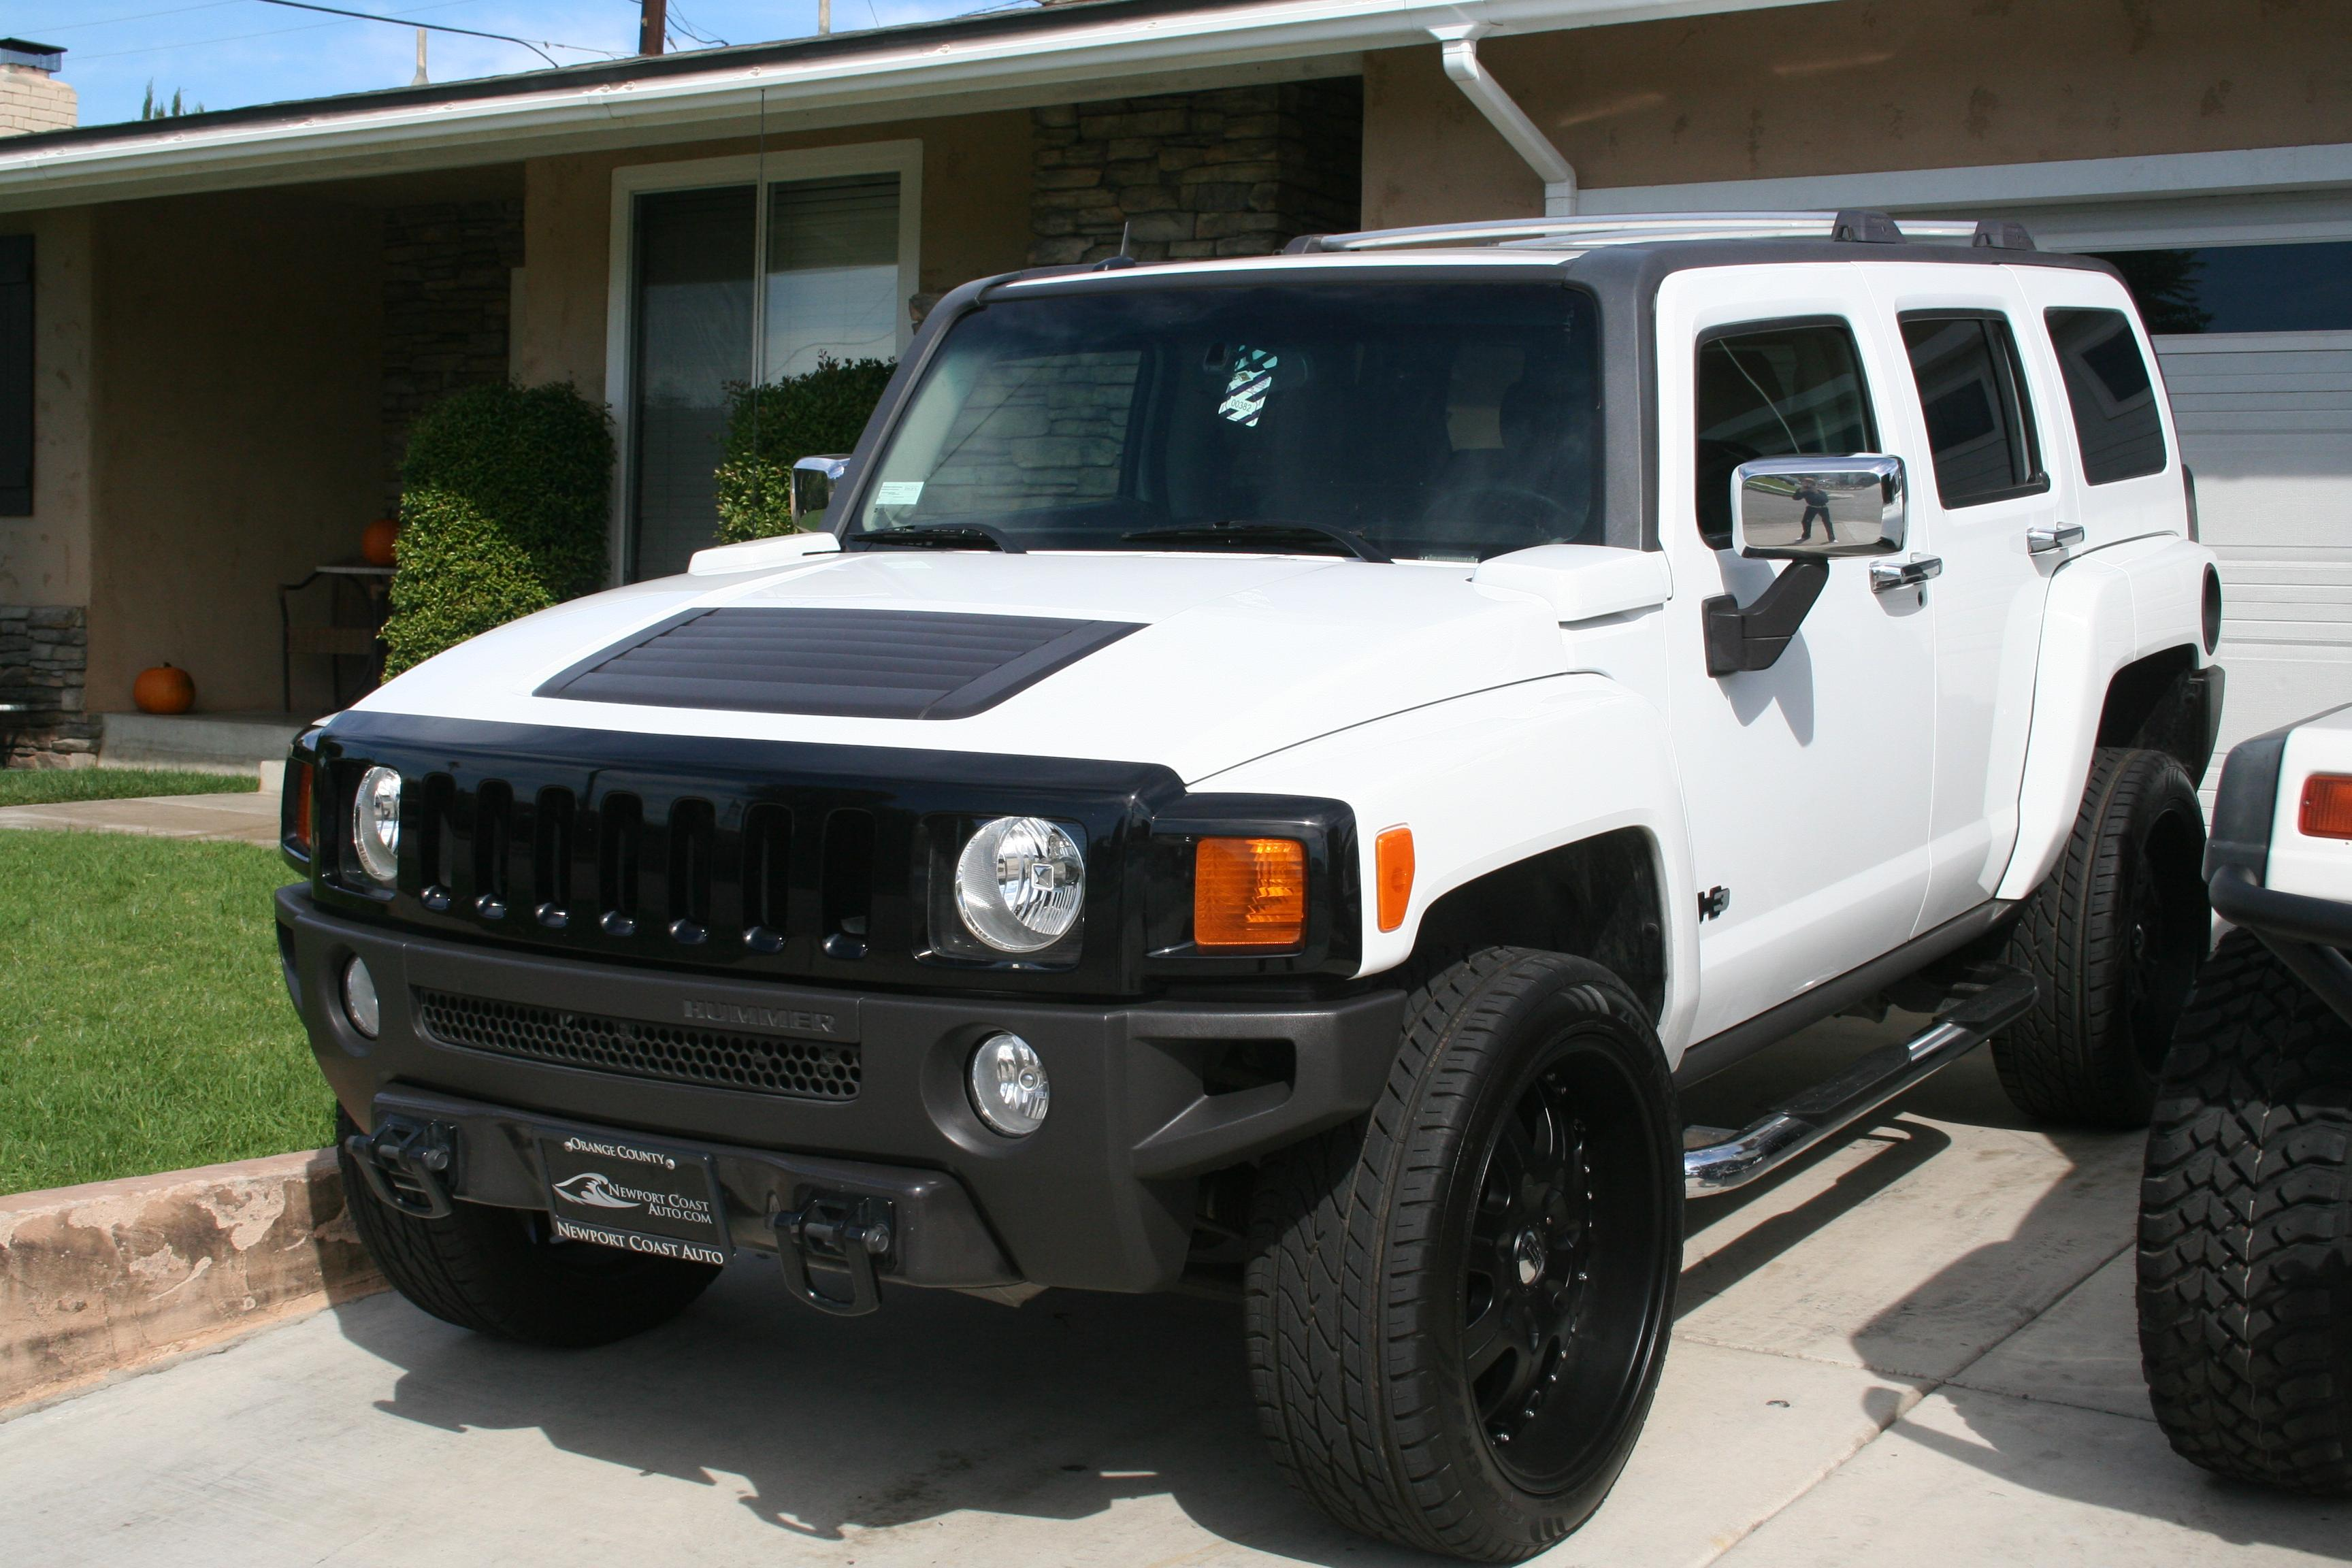 whiteswagh3 2006 hummer h3 specs photos modification. Black Bedroom Furniture Sets. Home Design Ideas